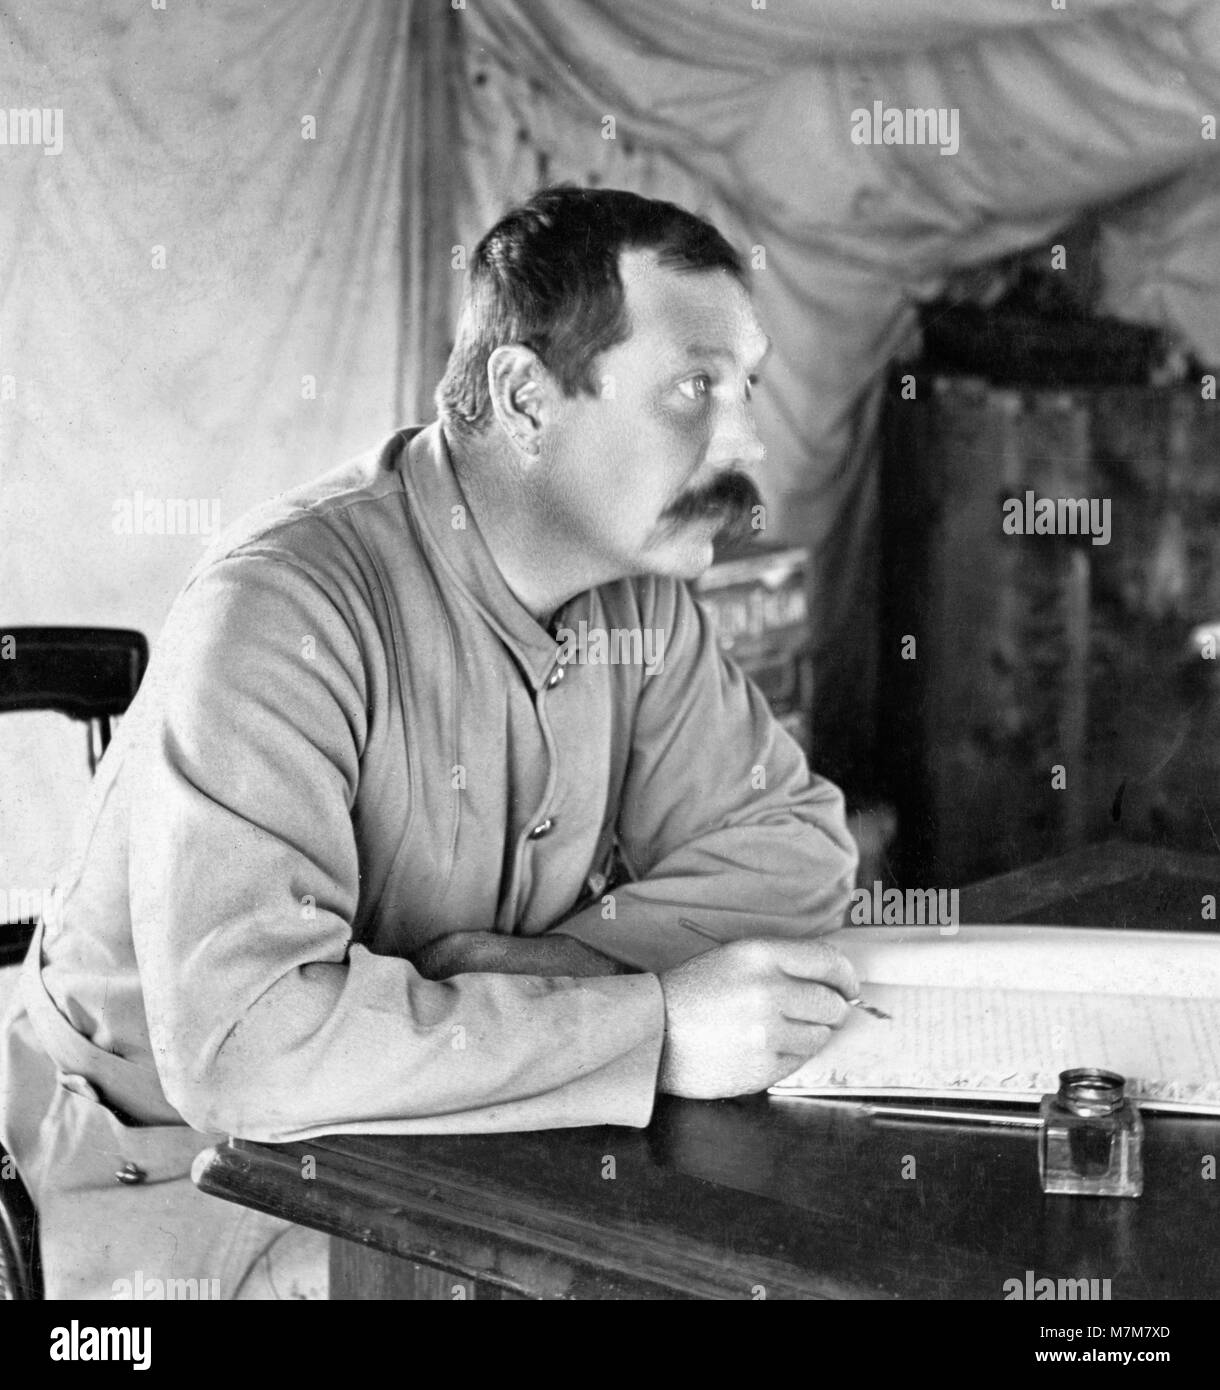 The British writer and physician, Sir Arthur Conan Doyle, creator of Sherlock Holmes in his tent at Bloemfontein, - Stock Image